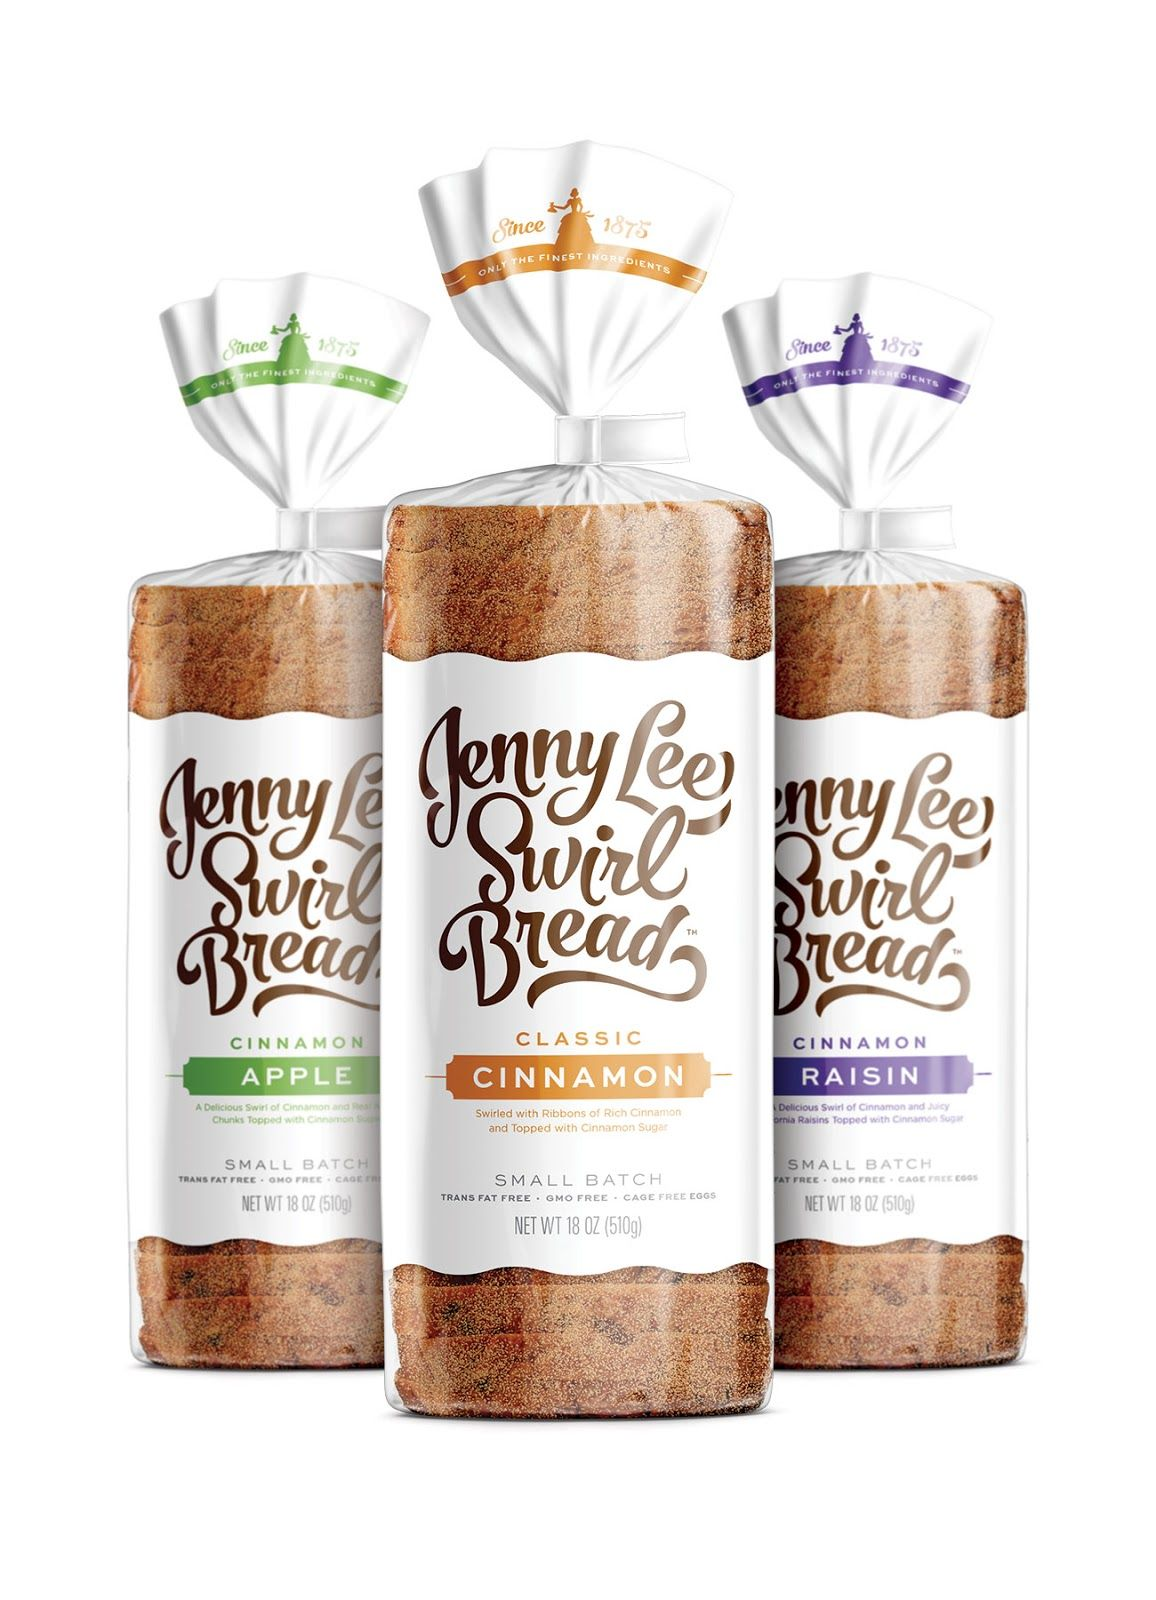 Jenny Lee Swirl Bread Bakery Packaging Design Bread Packaging Bakery Packaging